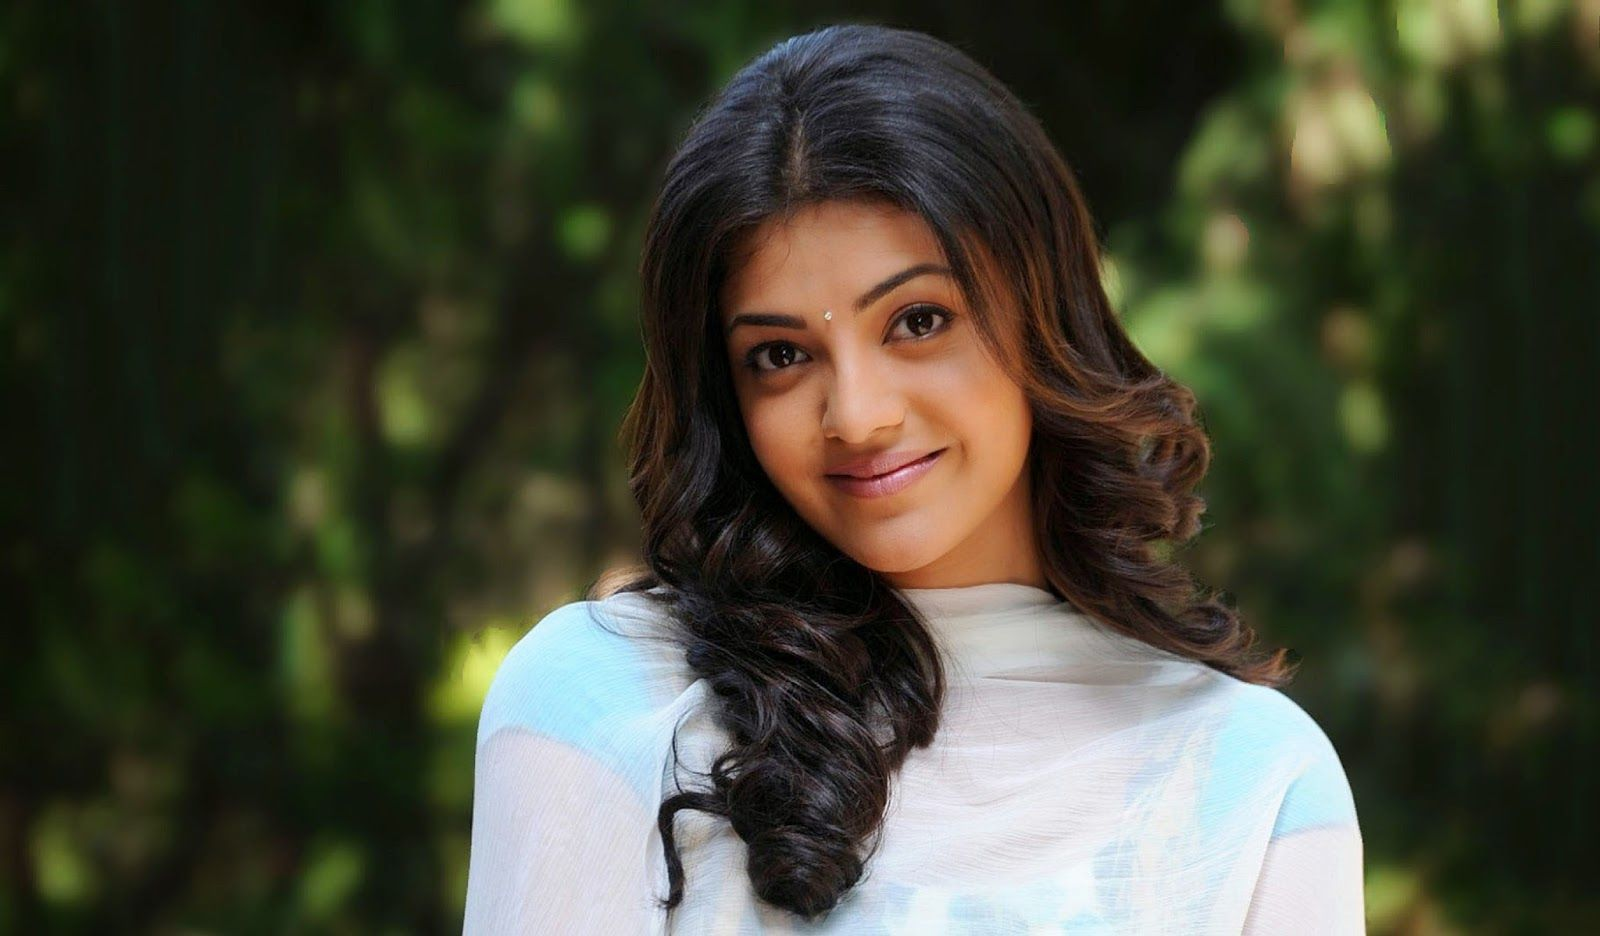 Kajal Aggarwal Wallpapers Photos Images in